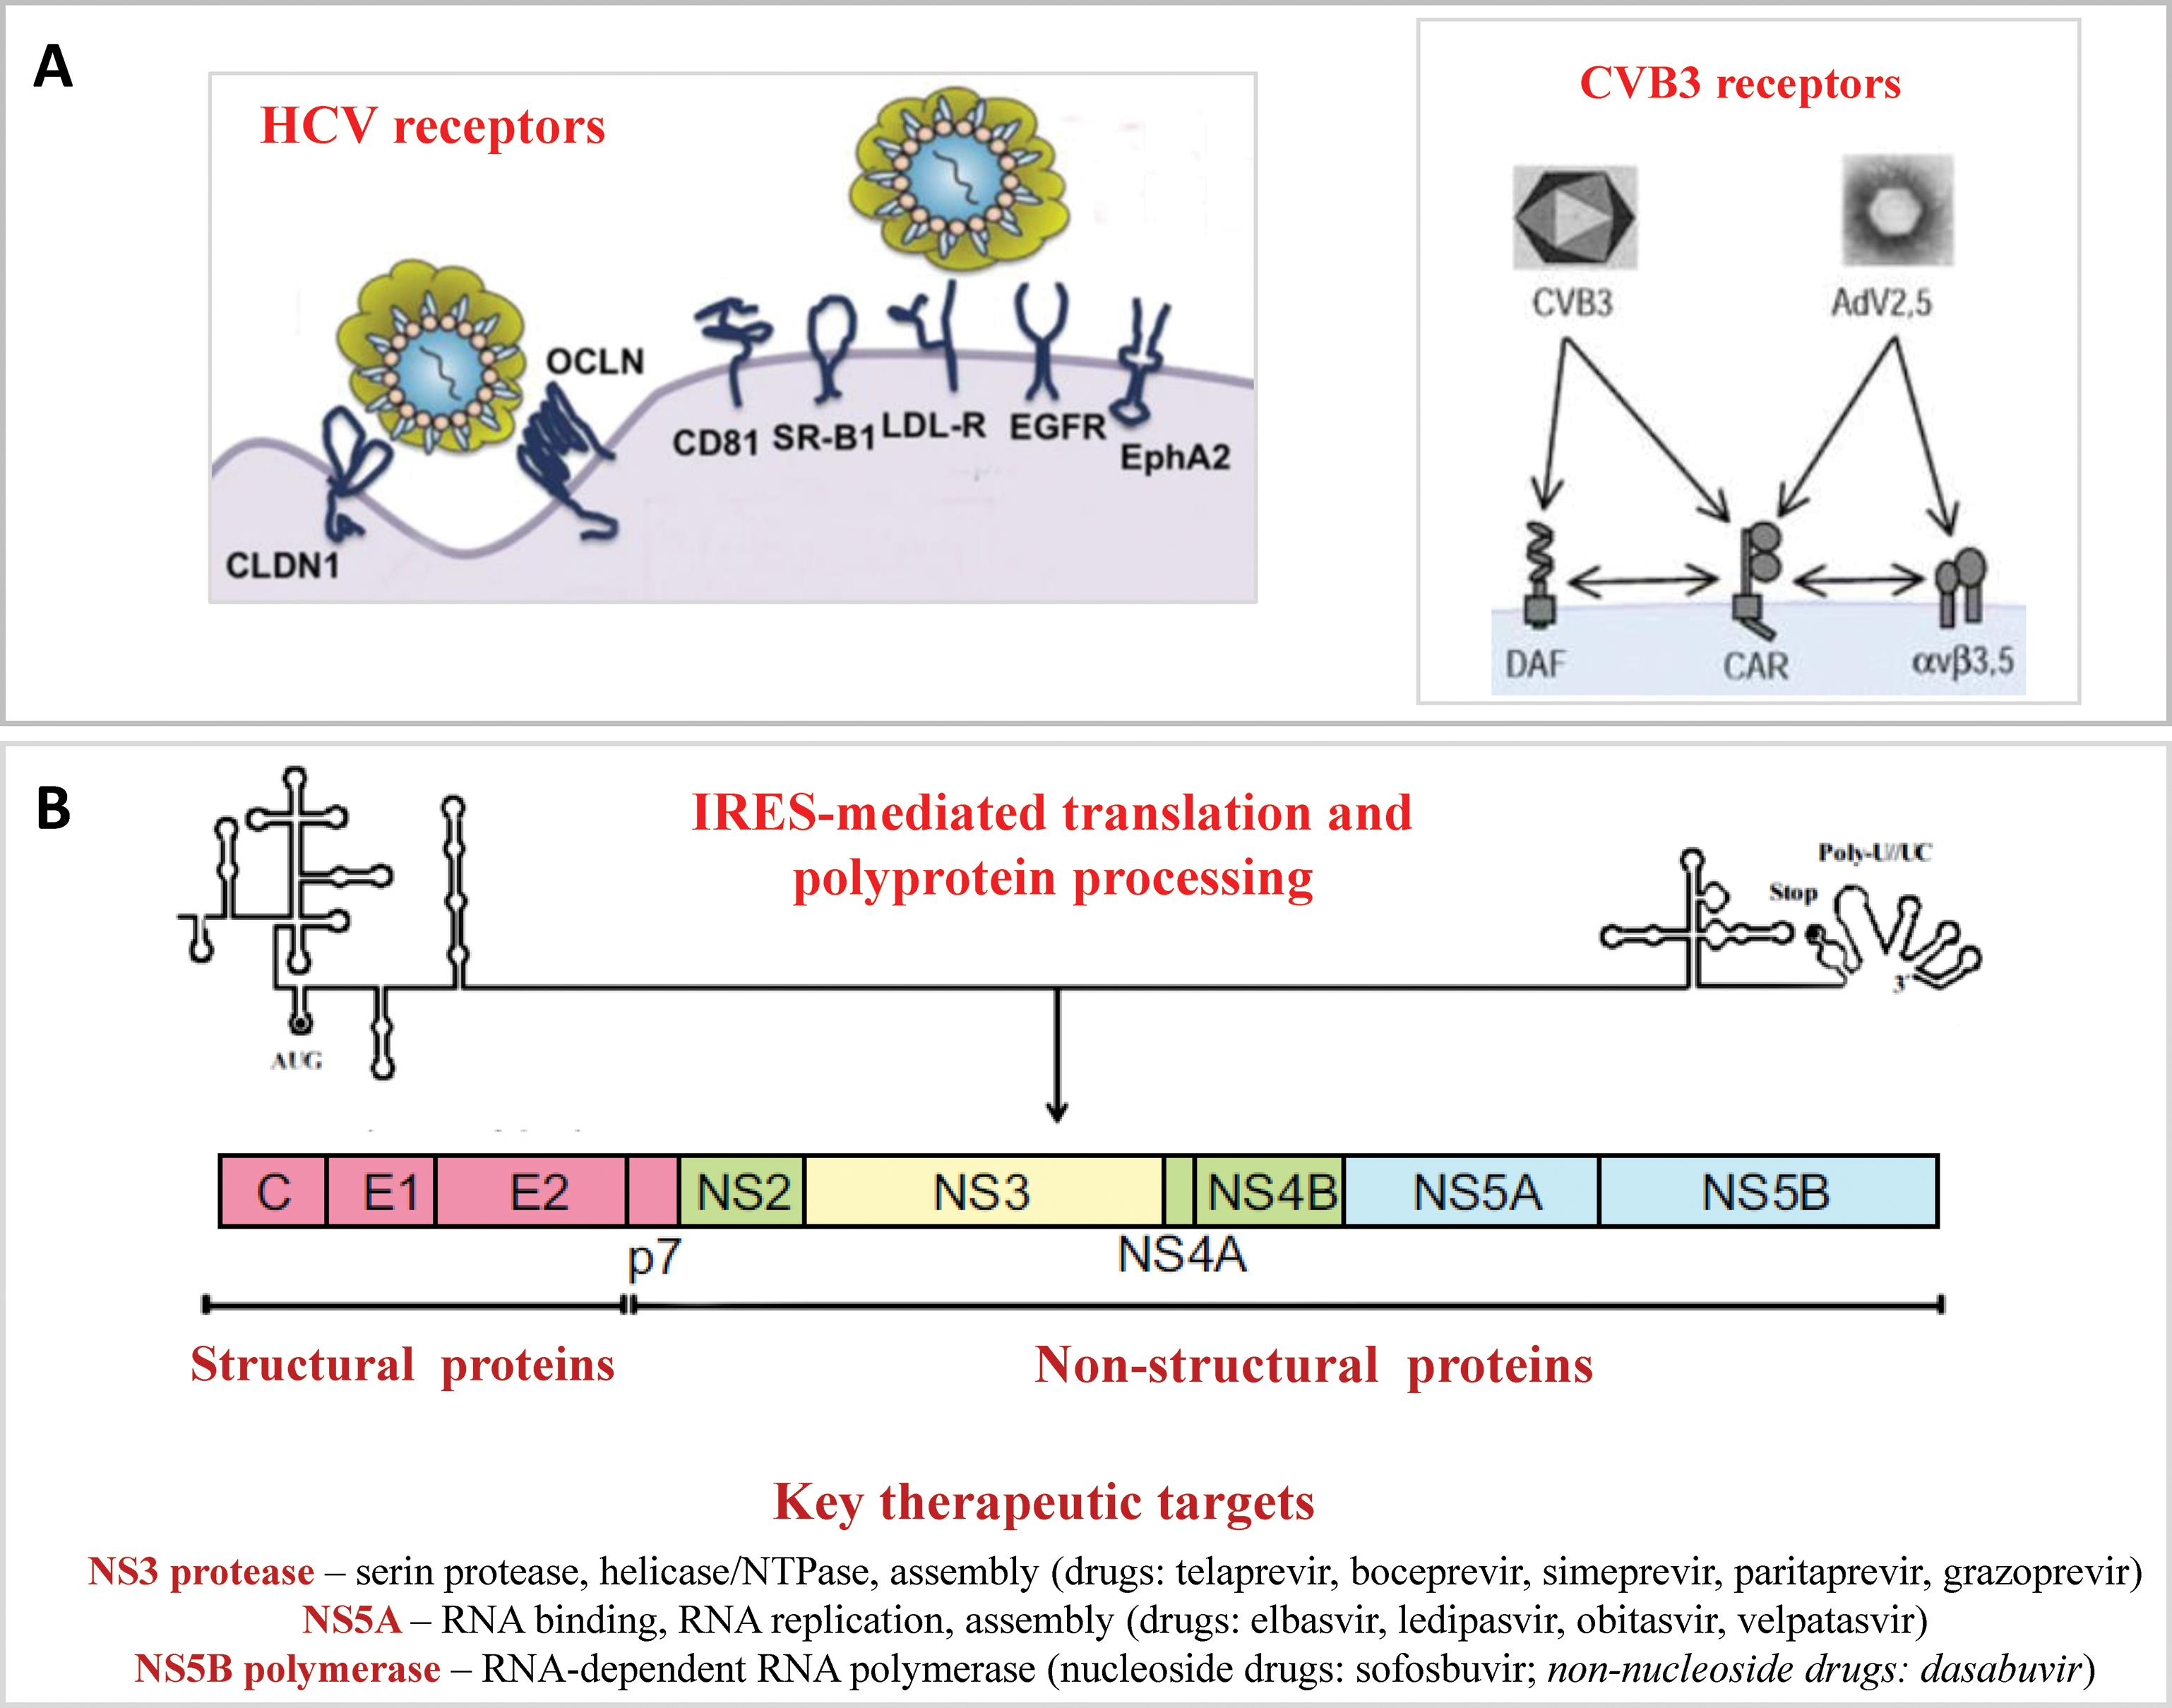 Similarities between the life cycles of HCV and the prototypical cardiotropic virus CVB3.